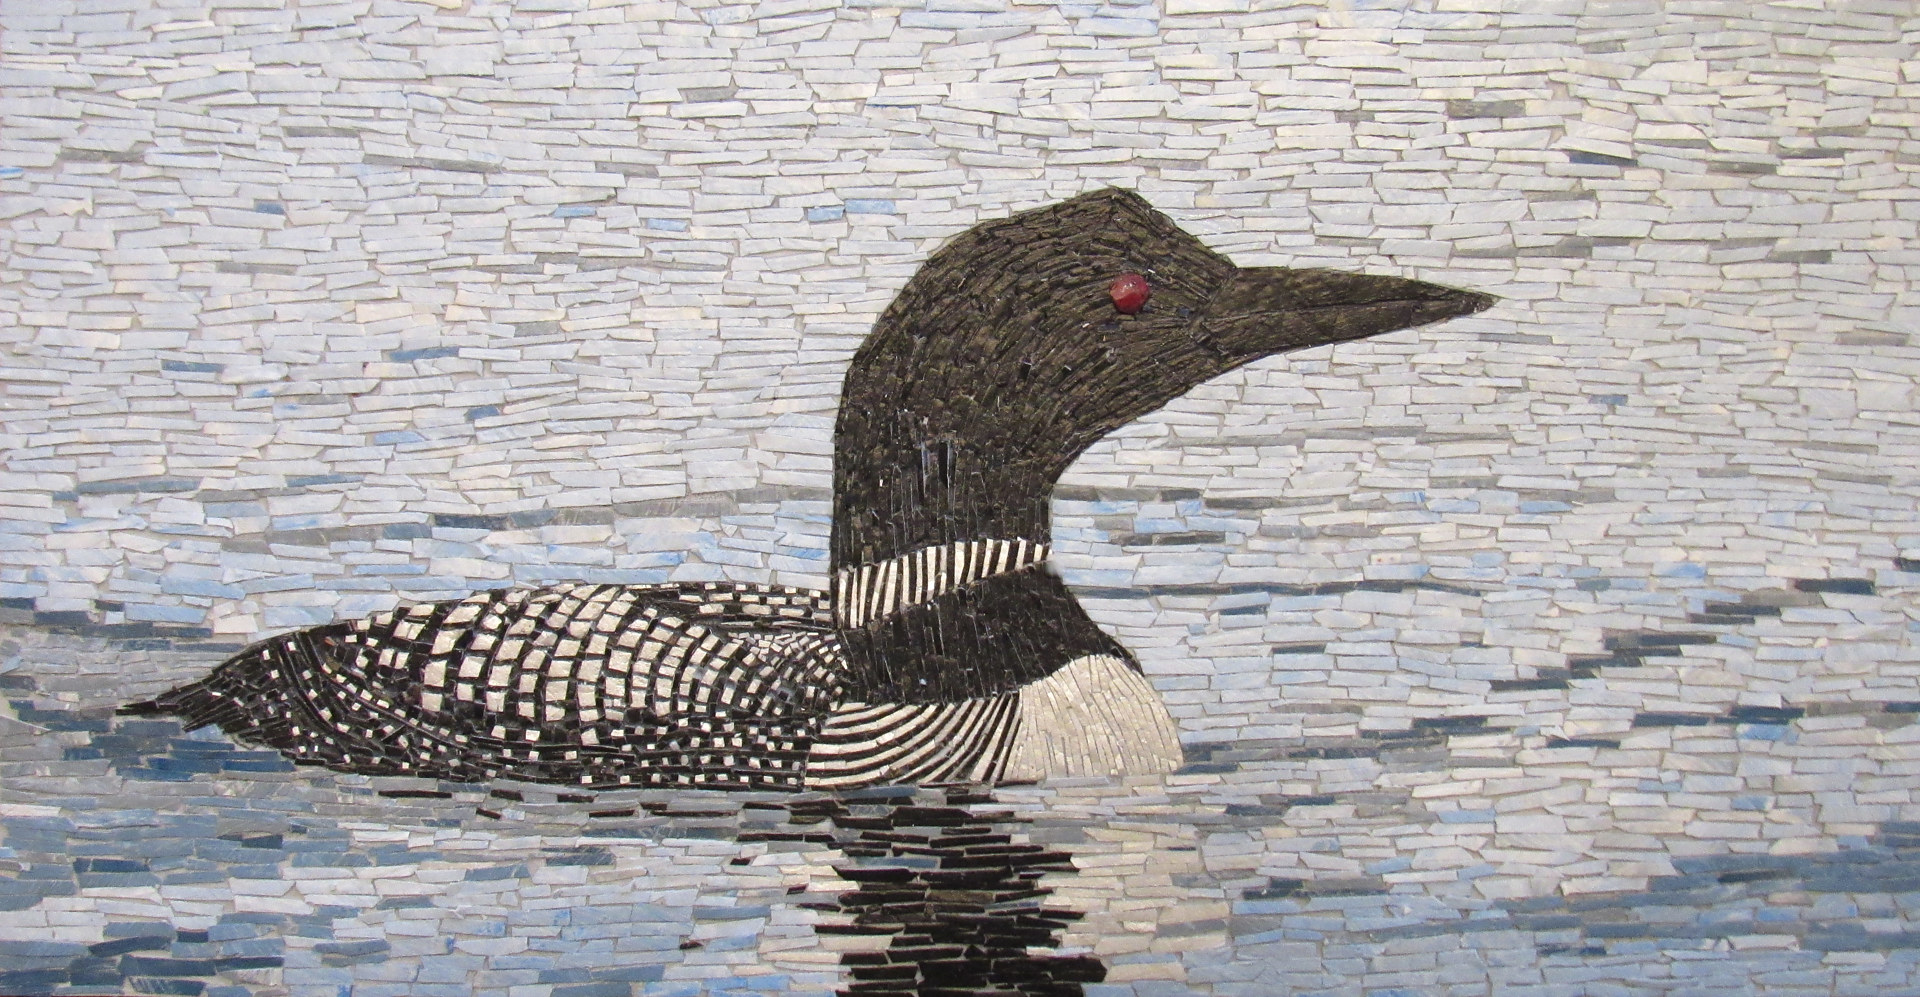 The Loon by Linda Biggers